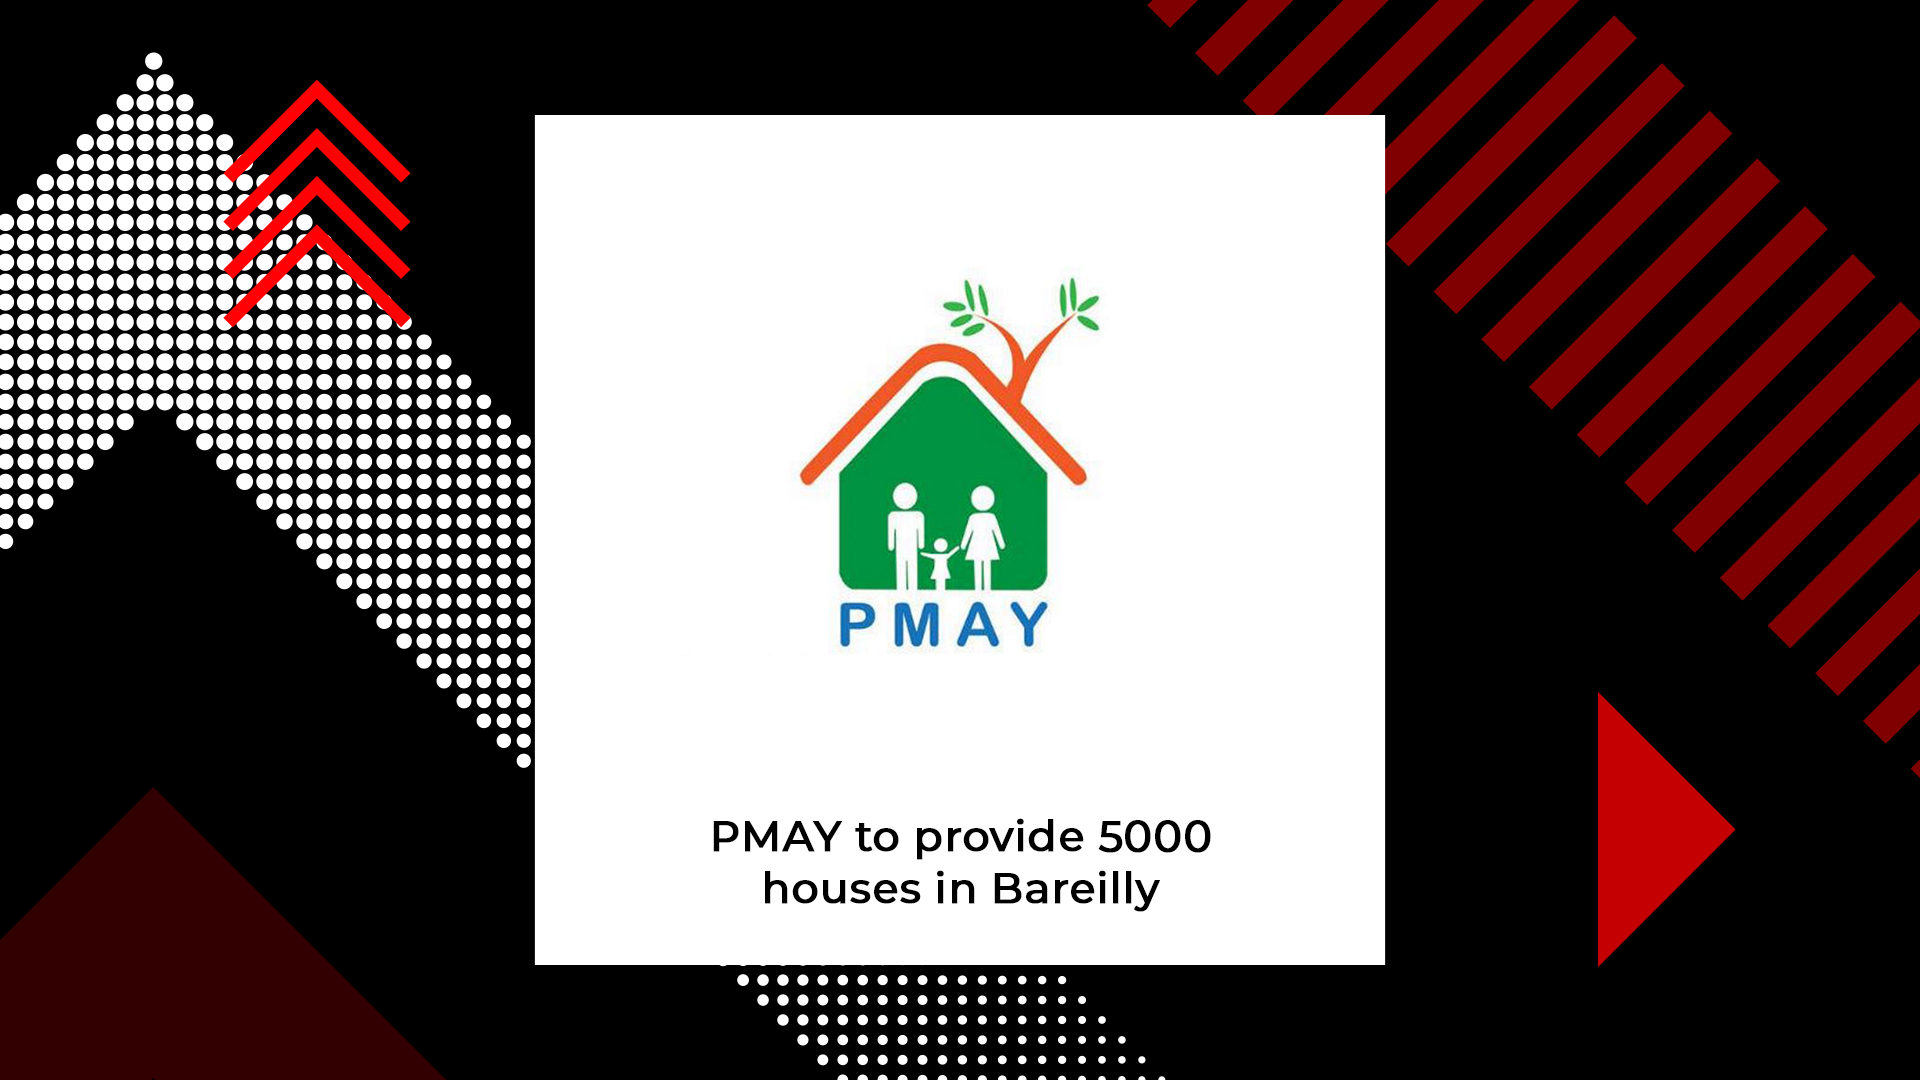 PMAY: Bareilly Authorities Aim To Provide 5000 Homes By 2021